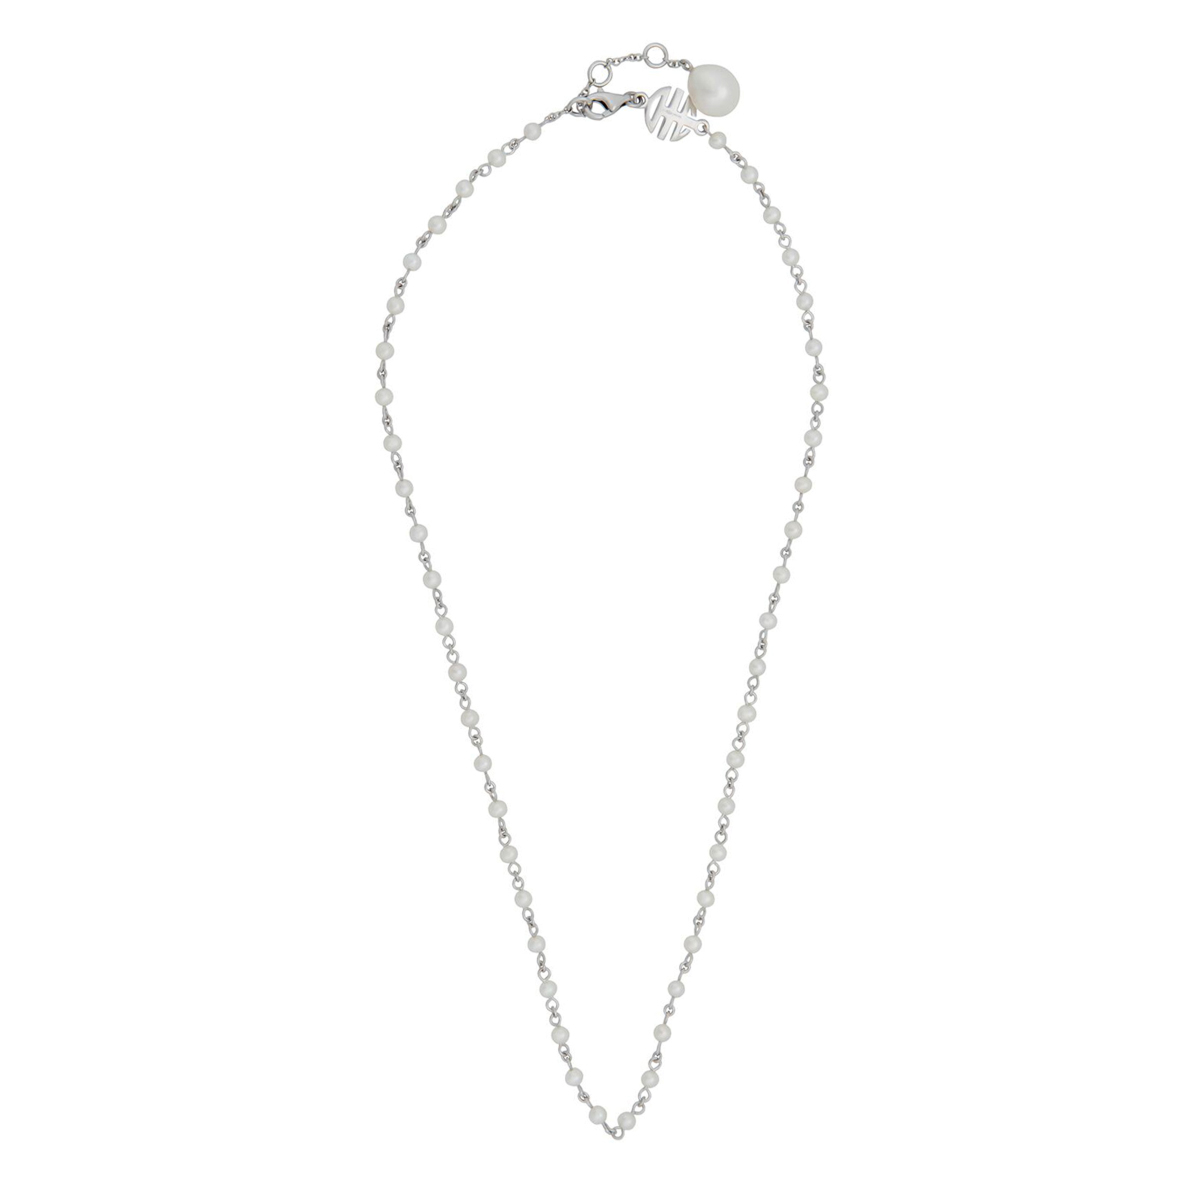 Mimi Milano Pearl White Gold Necklace - Mimi Milano Jewelry